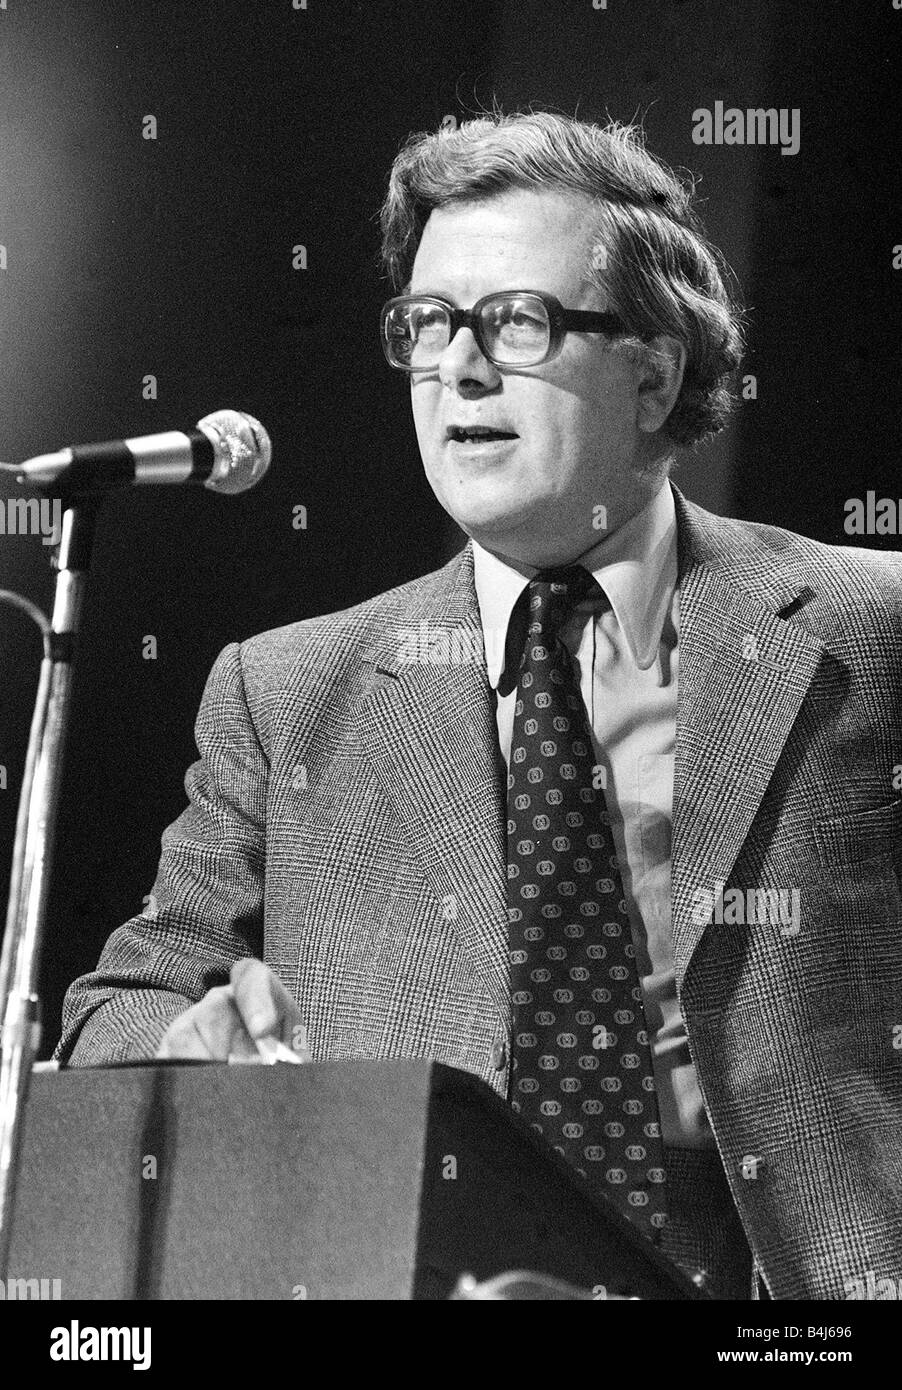 Sir Geoffrey Howe Oct 1977 Conservative Party Conference - Stock Image